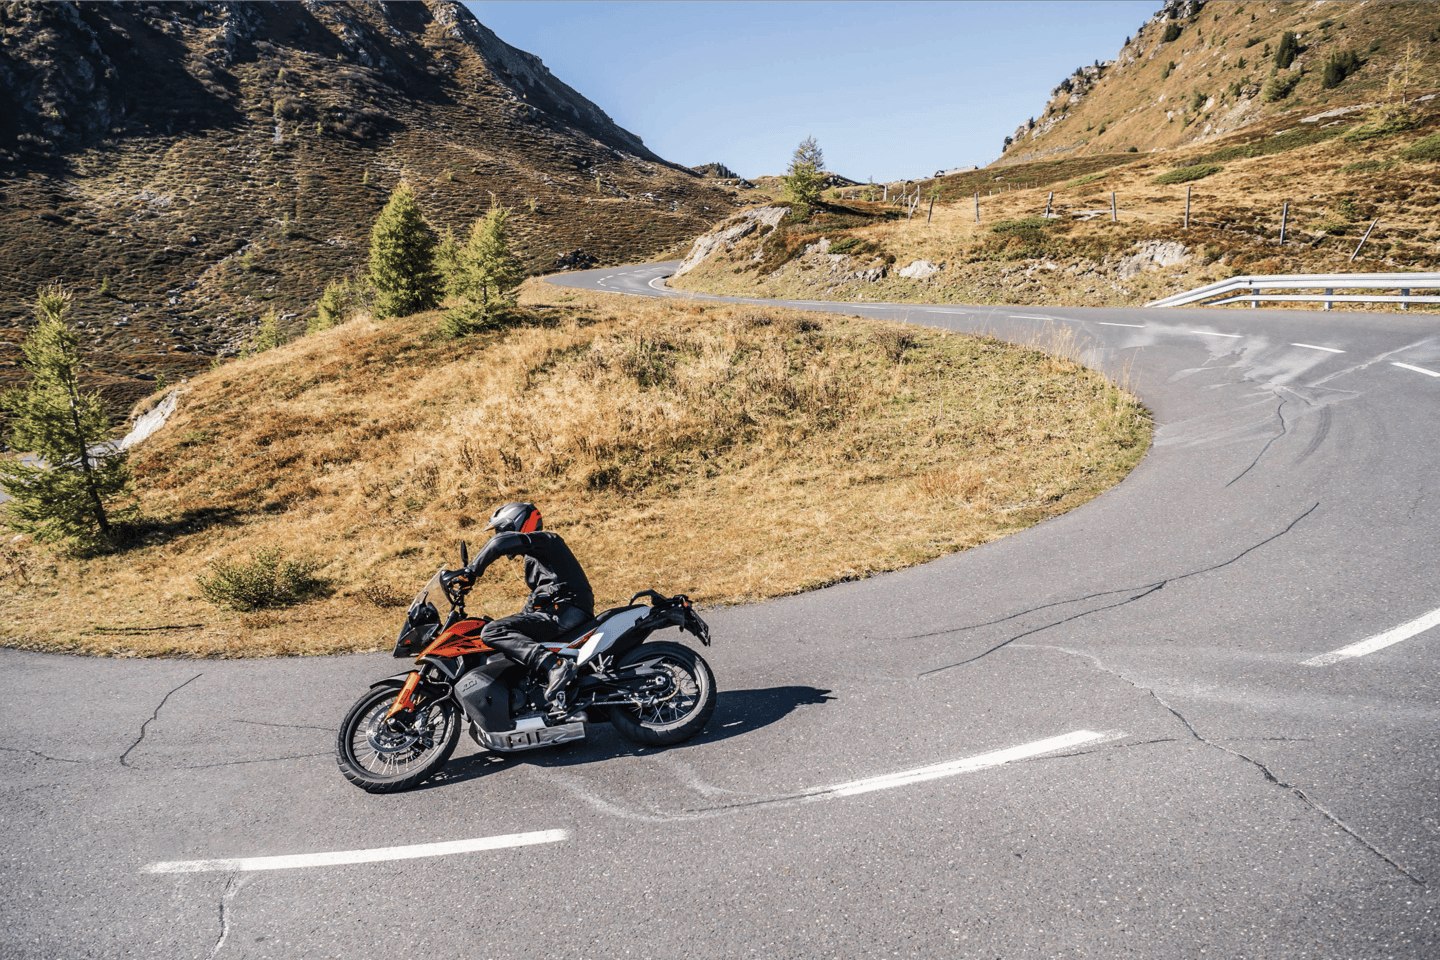 KTM 790 Adventure: the more road focused of the two